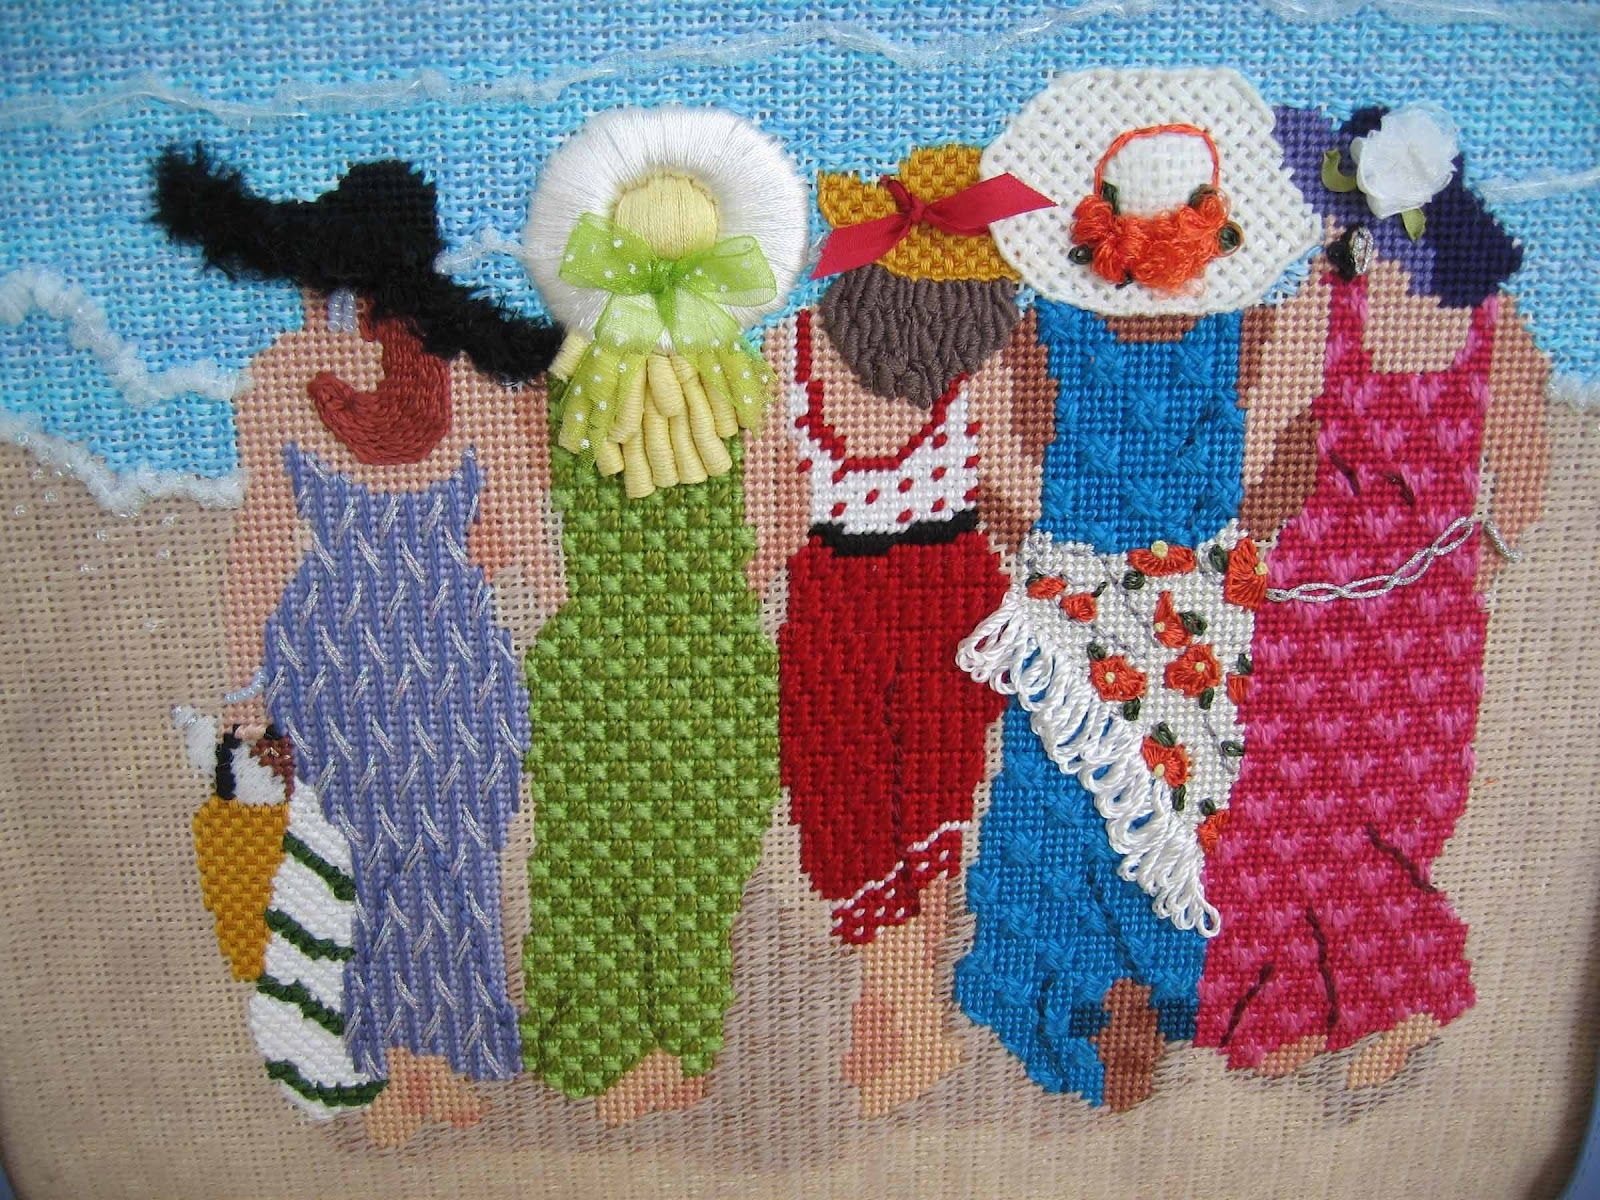 It's not your Grandmother's Needlepoint: It's Raining, It's Pouring, Let's all go to the Beach